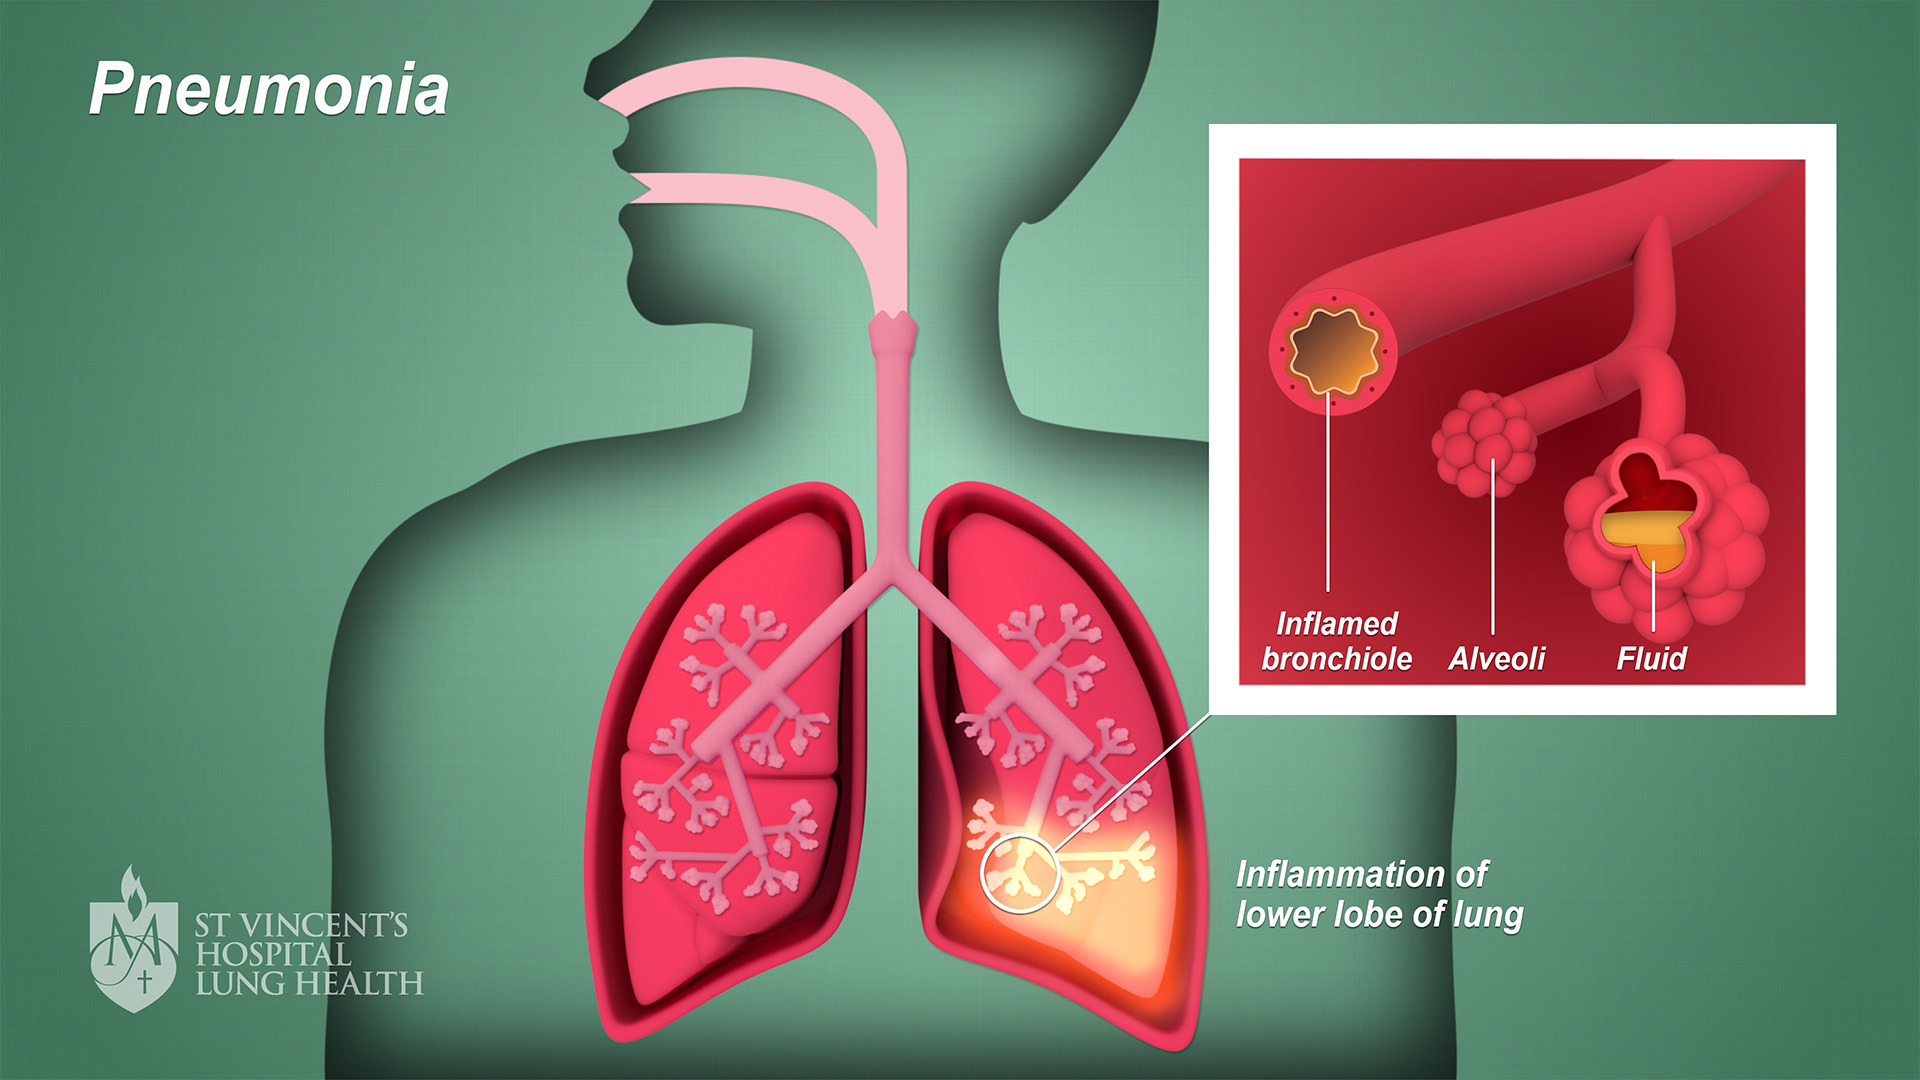 4_SVH_Lung_Health_Pneumonia_final_1080p